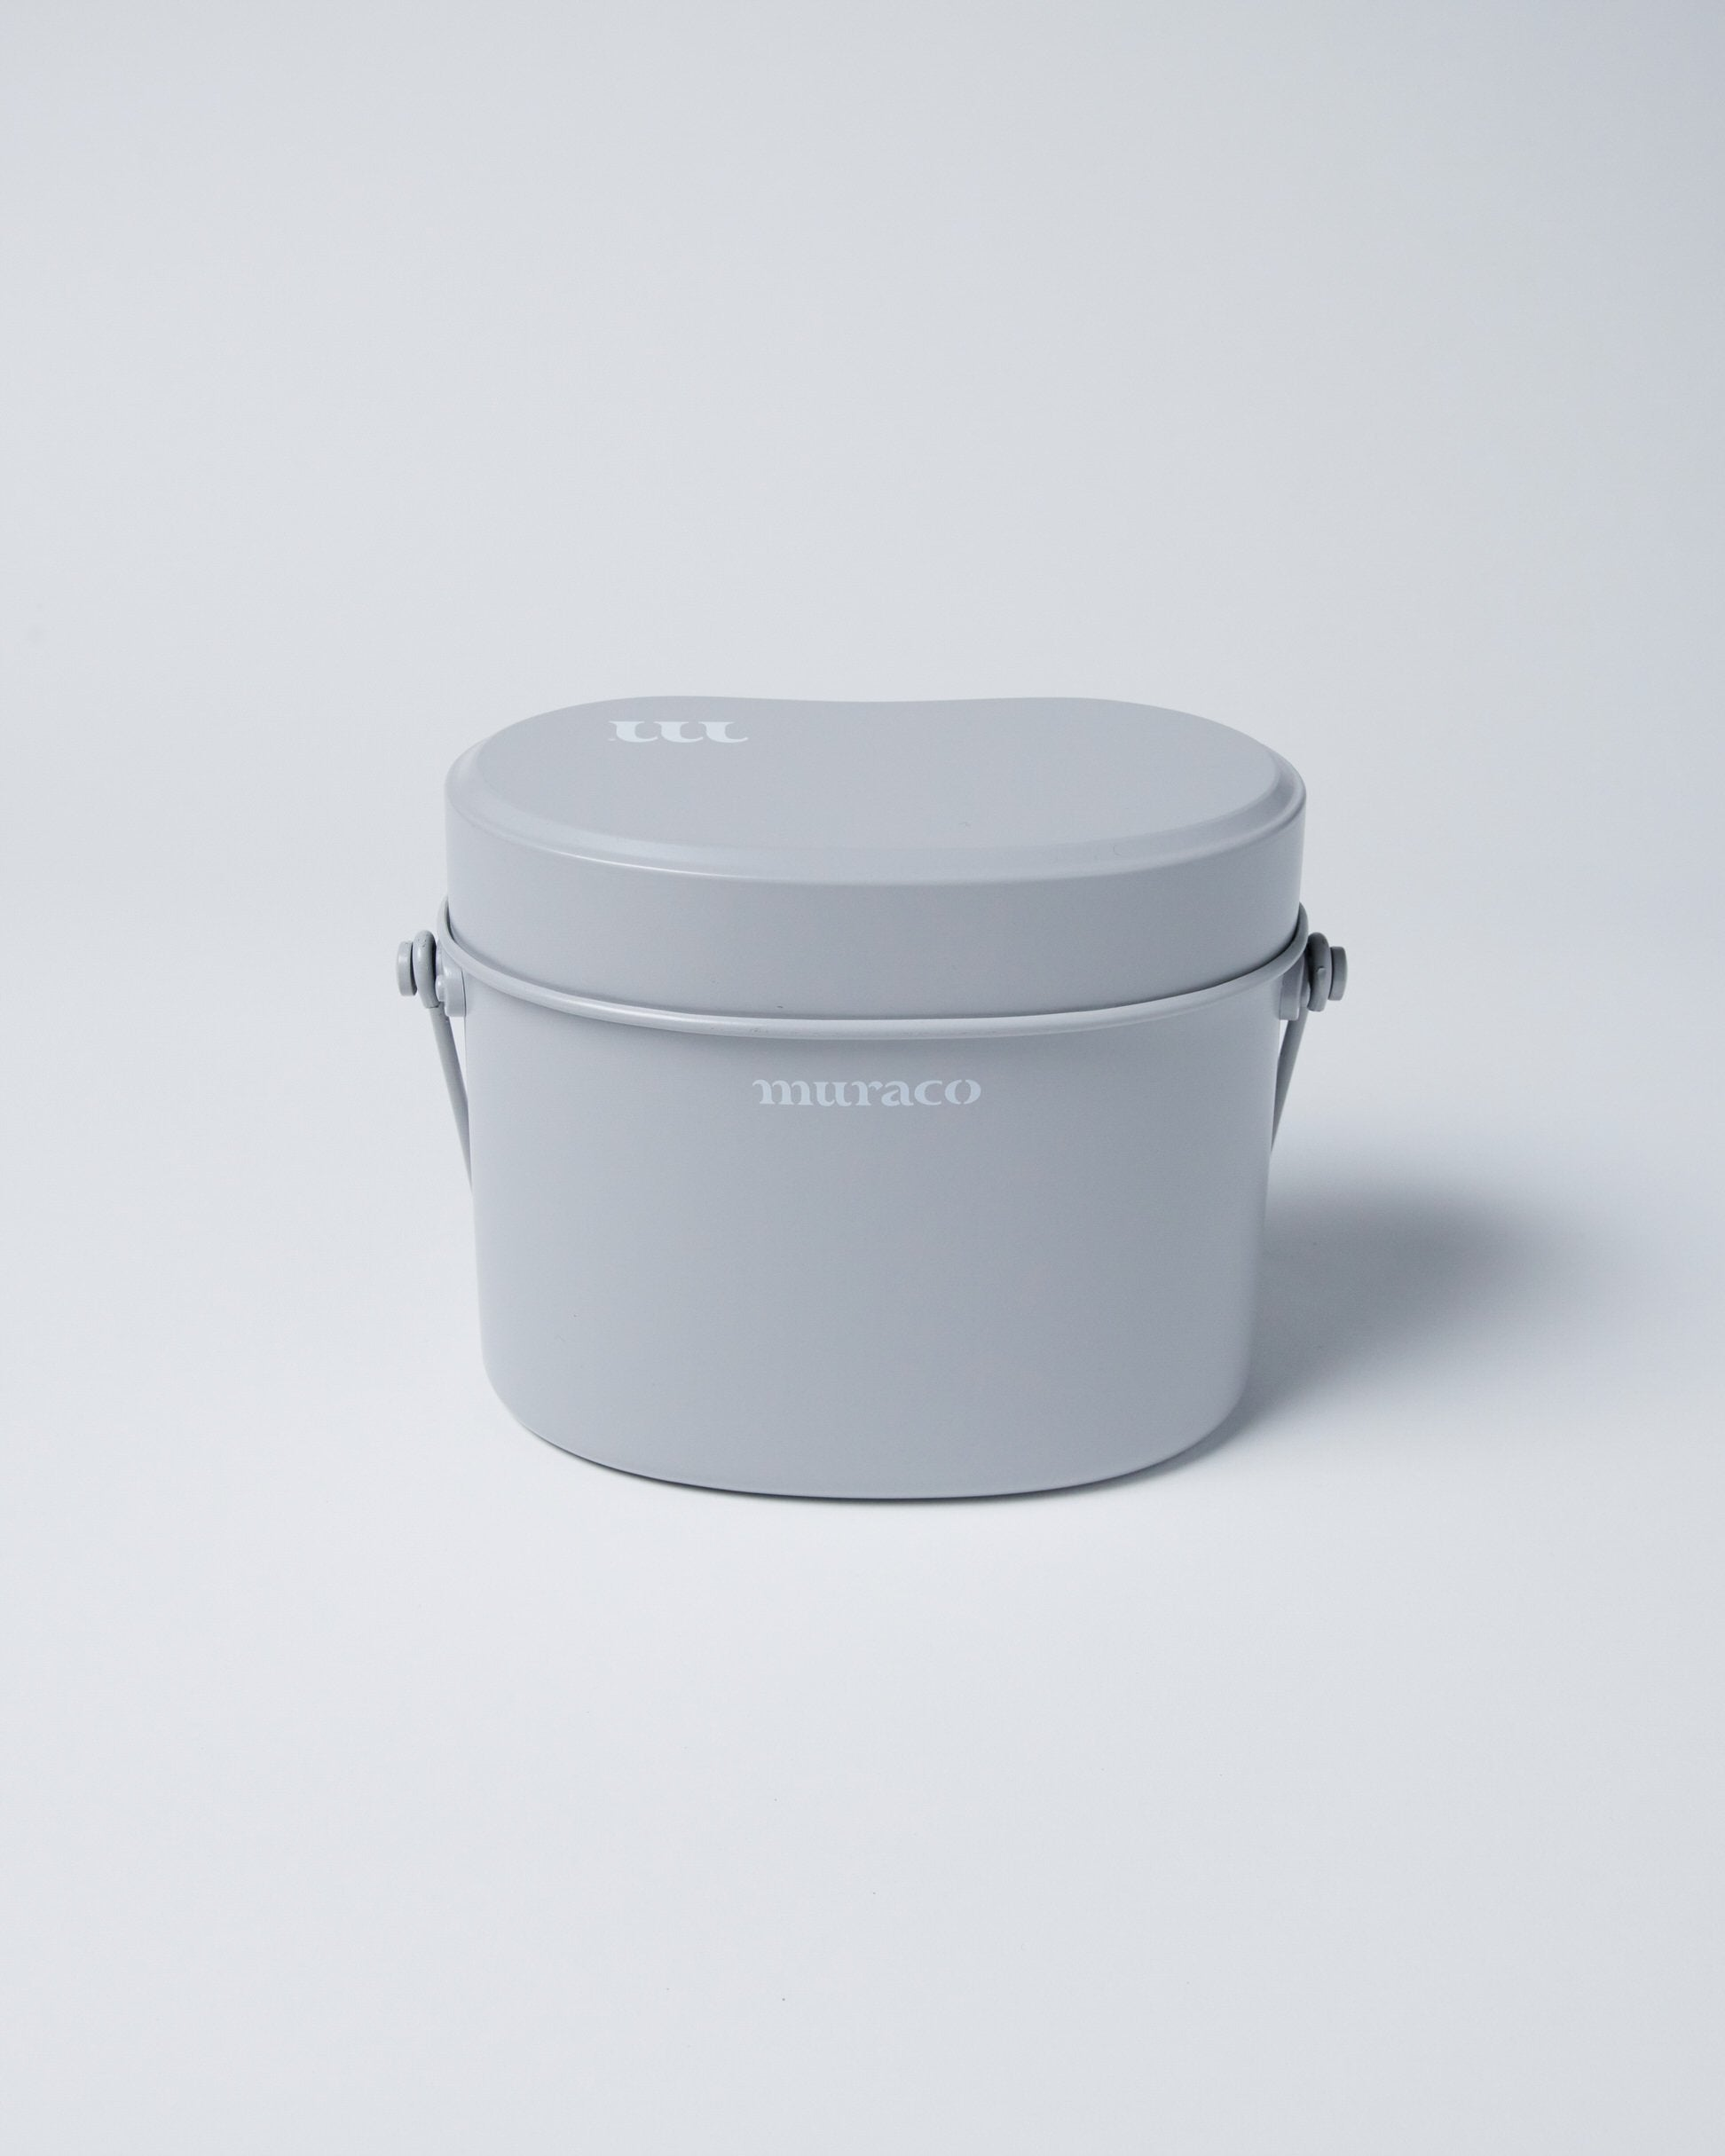 RICE COOKER GREY - muracodesigns